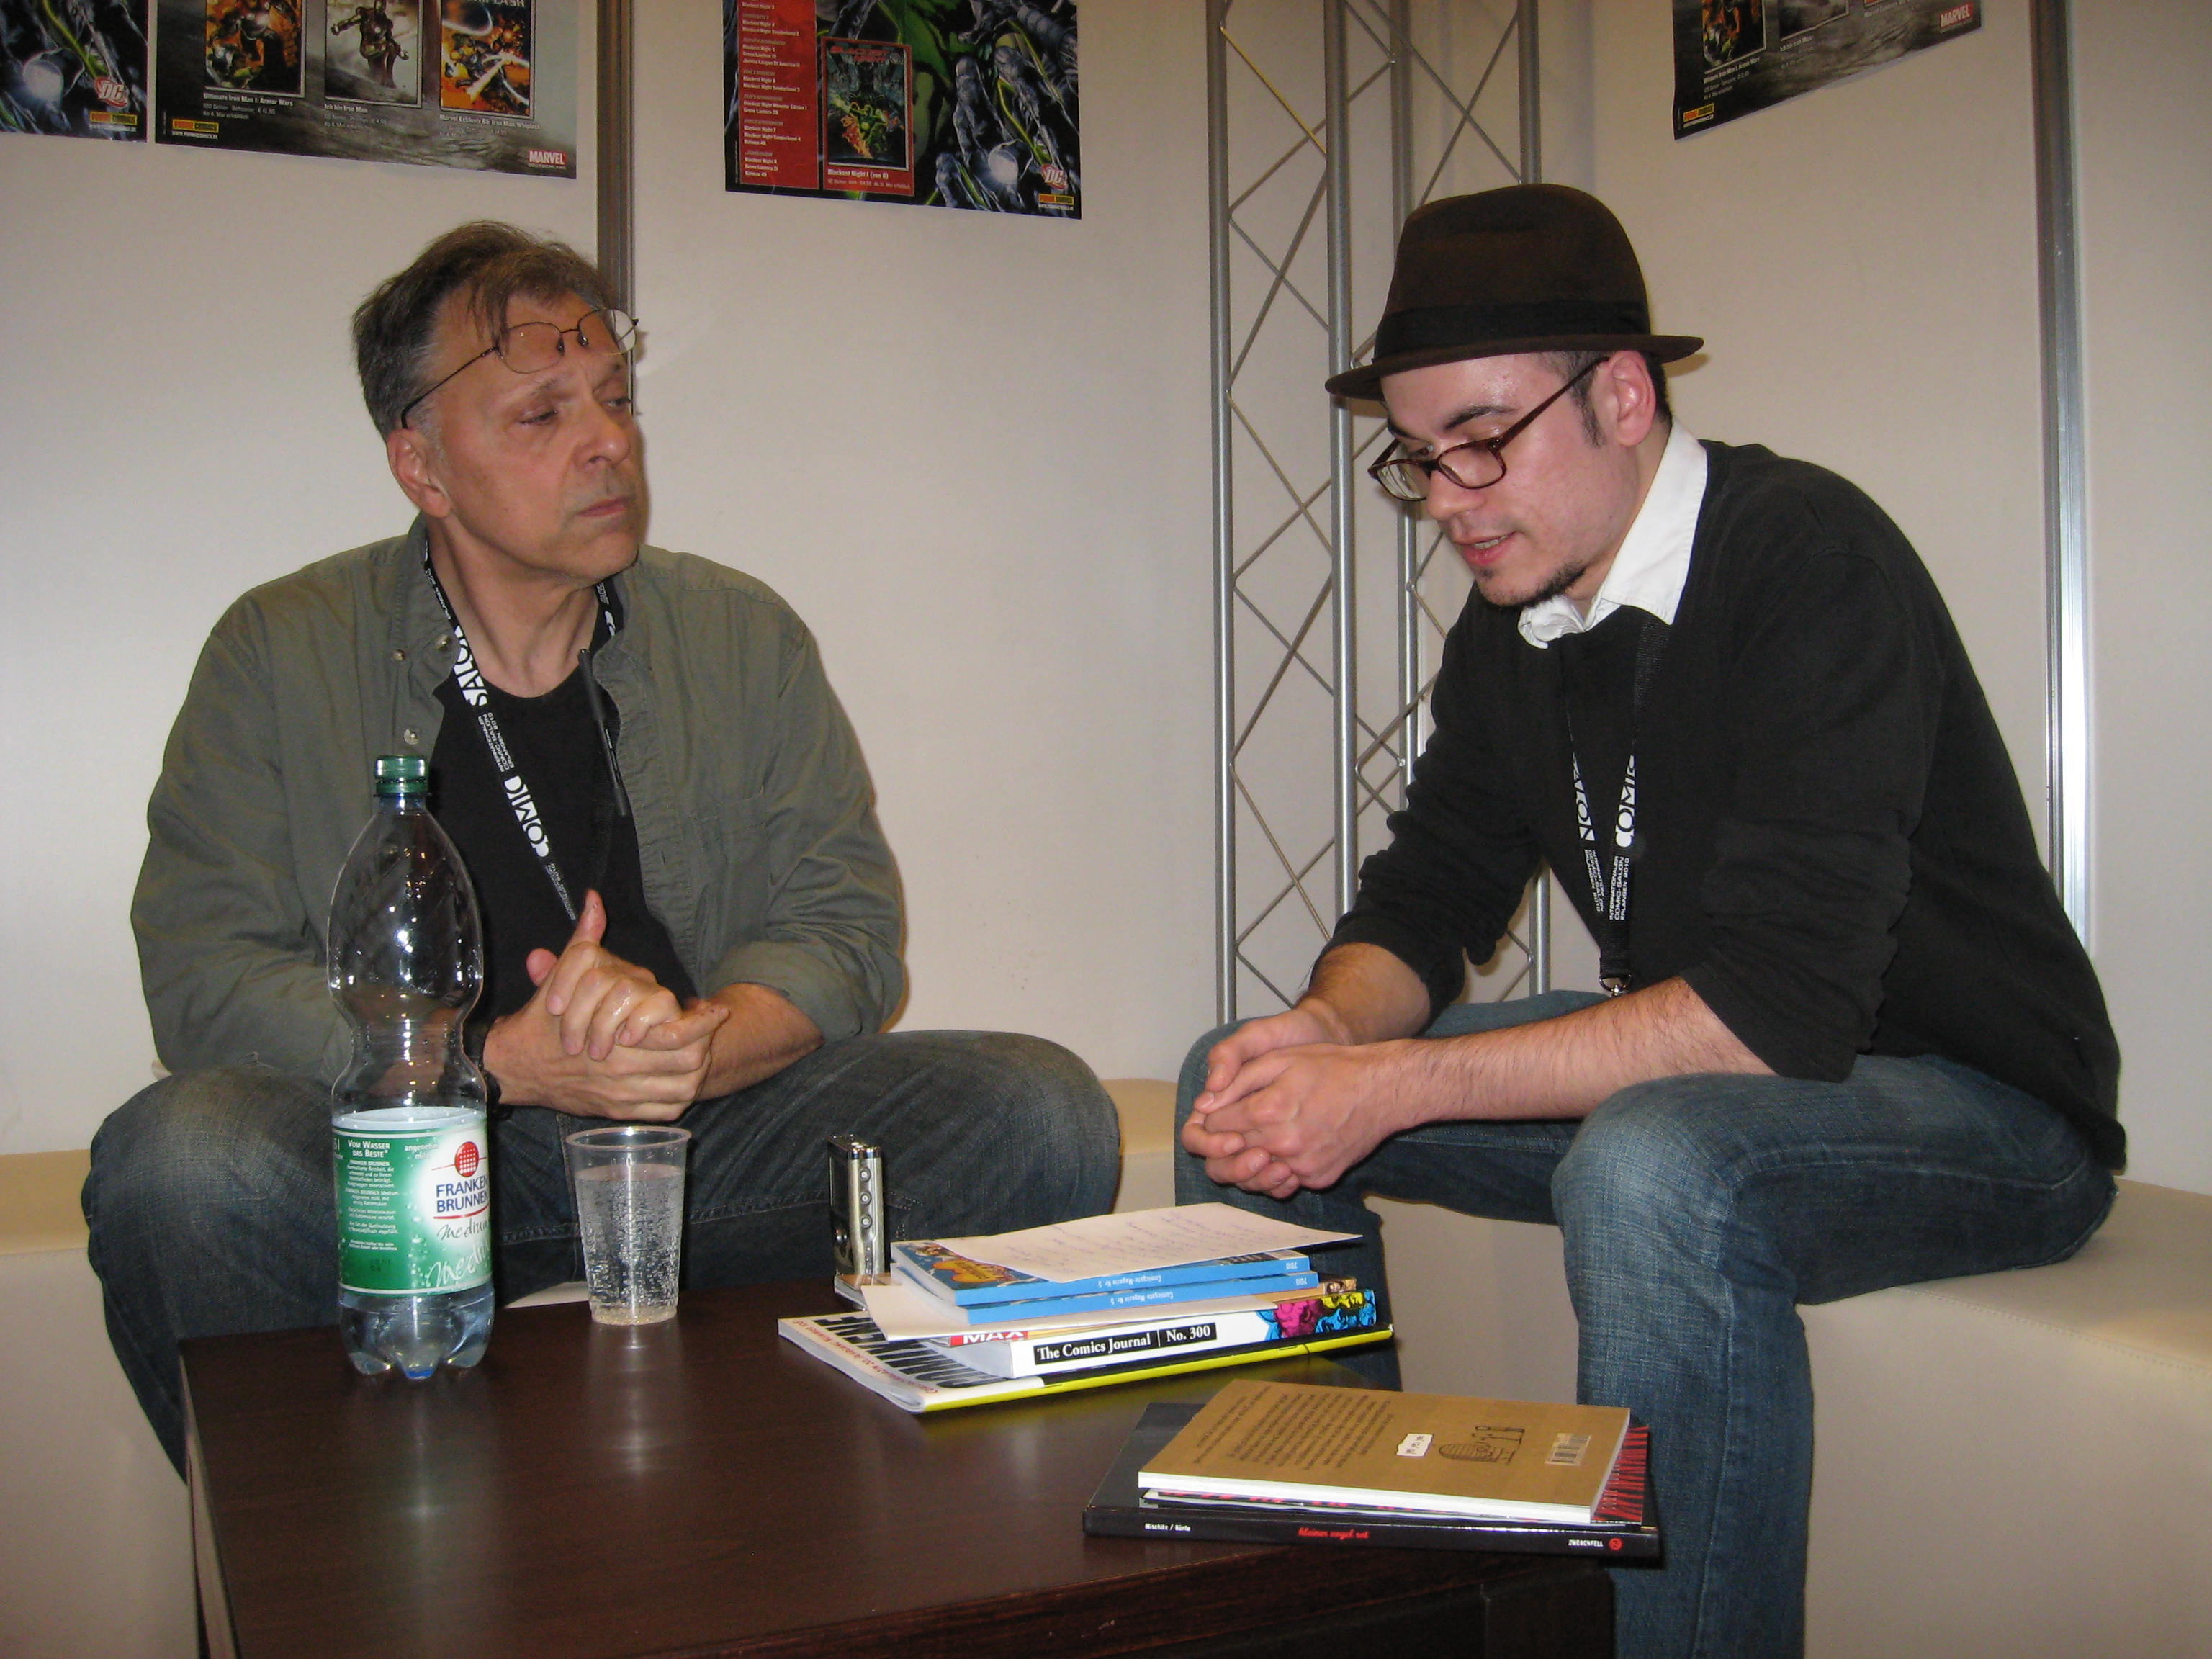 Howard Chaykin, Marc-Oliver Frisch